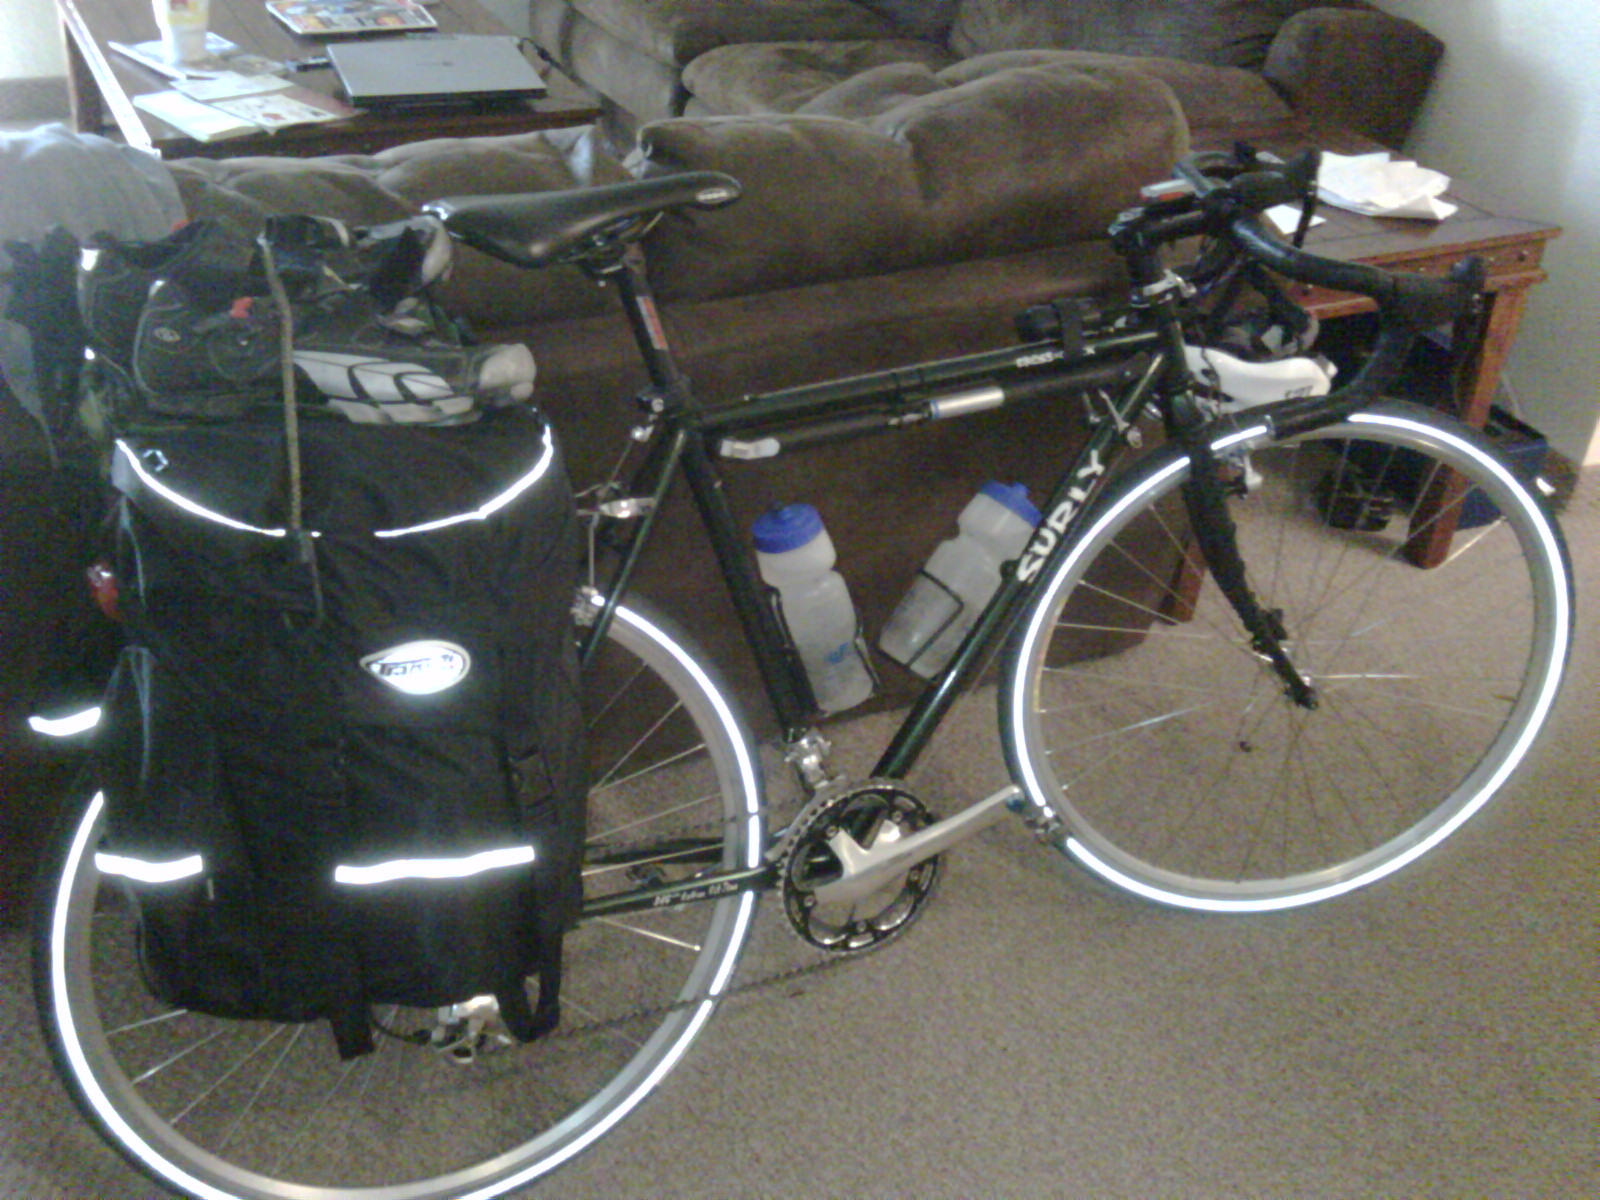 pics of your panniers please-img00247.jpg